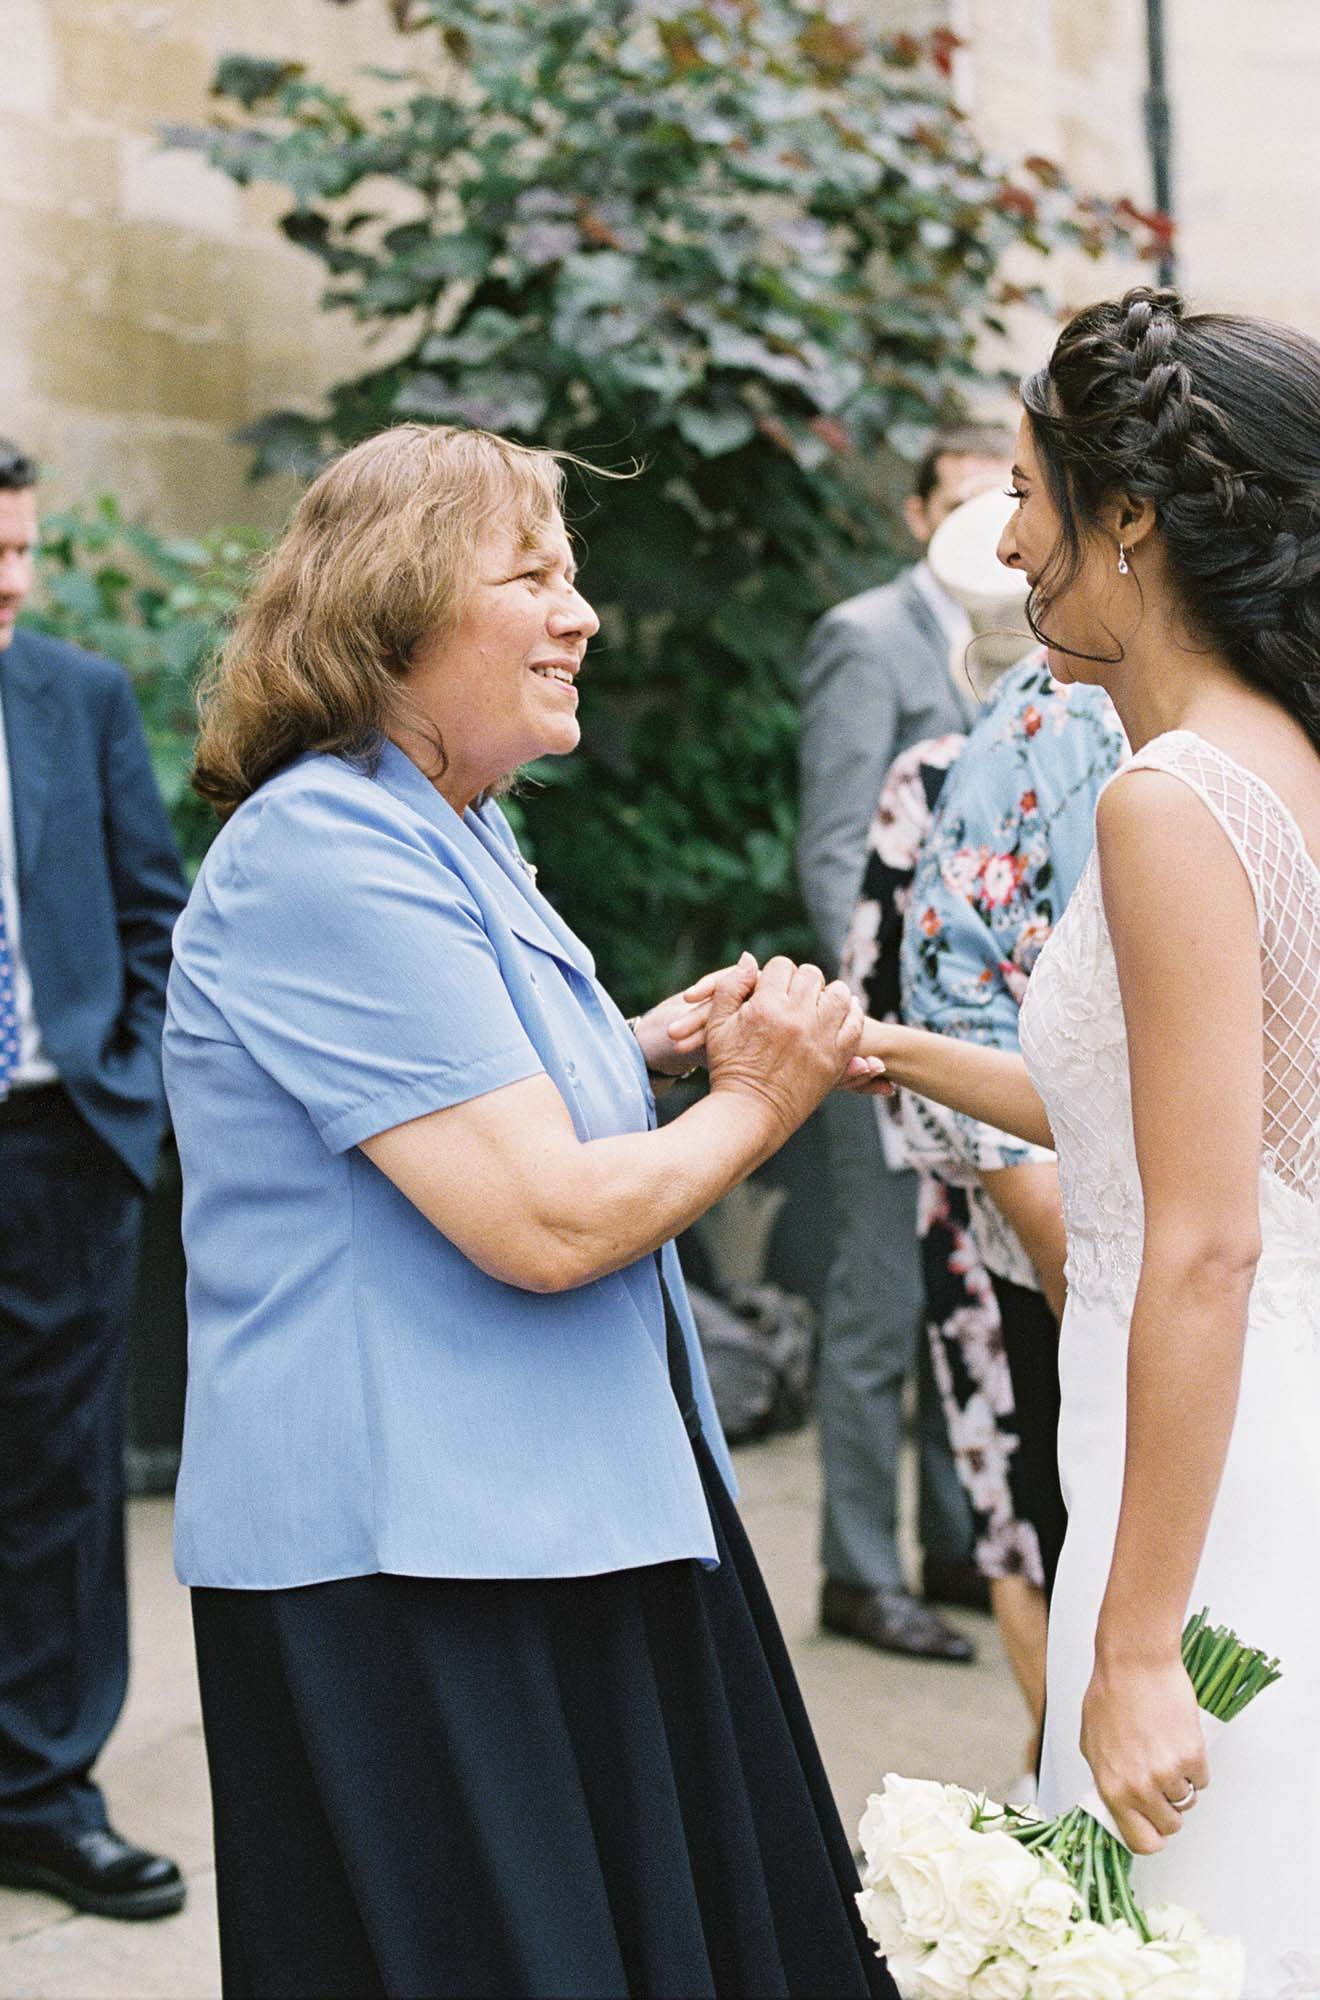 Wedding guests congratulating bride and holding her hand